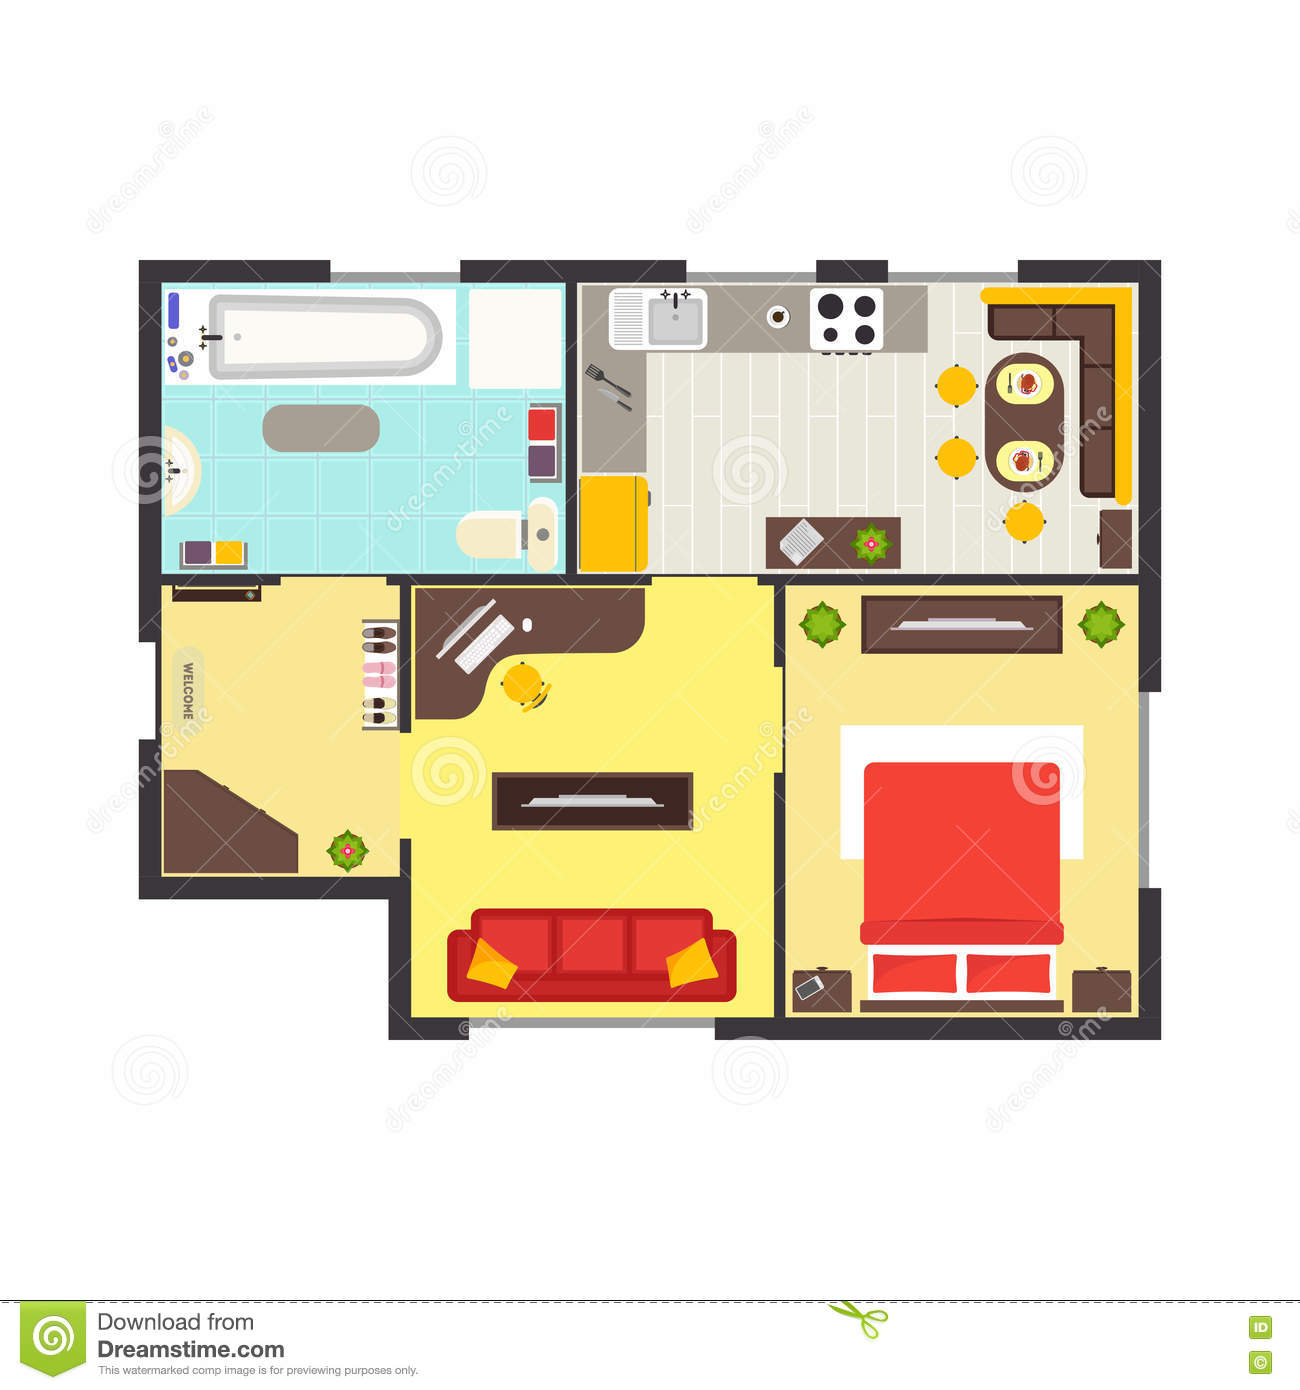 Plan d un appartement for Appartement design plan